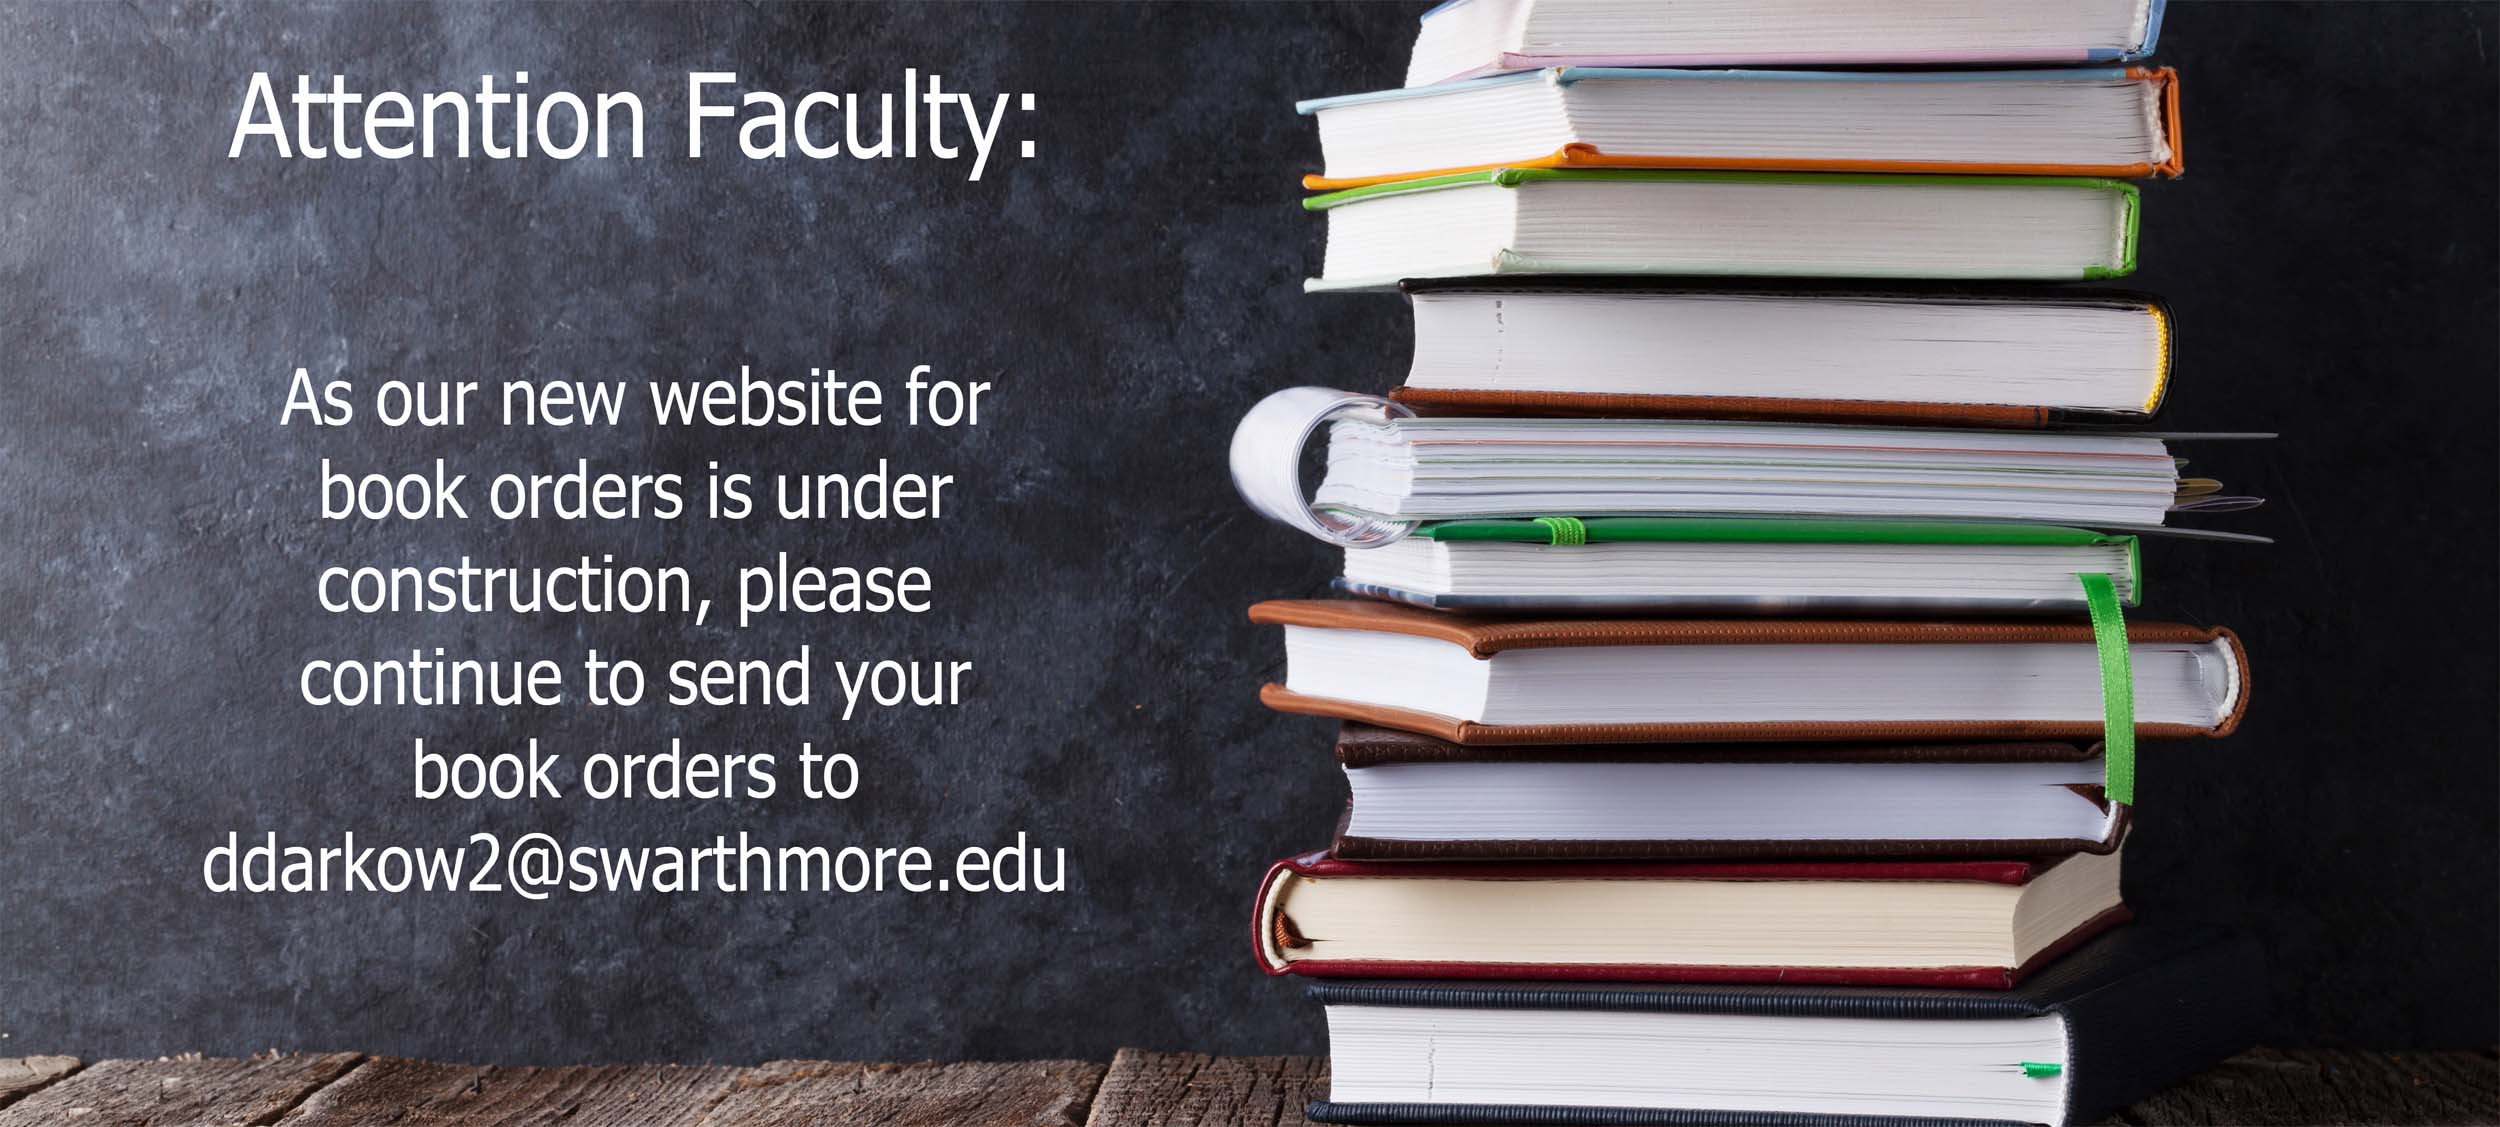 Attention Faculty: As our new website for books orders is under construction, please continue to send your book orders to ddarkow2@swarthmore.edu